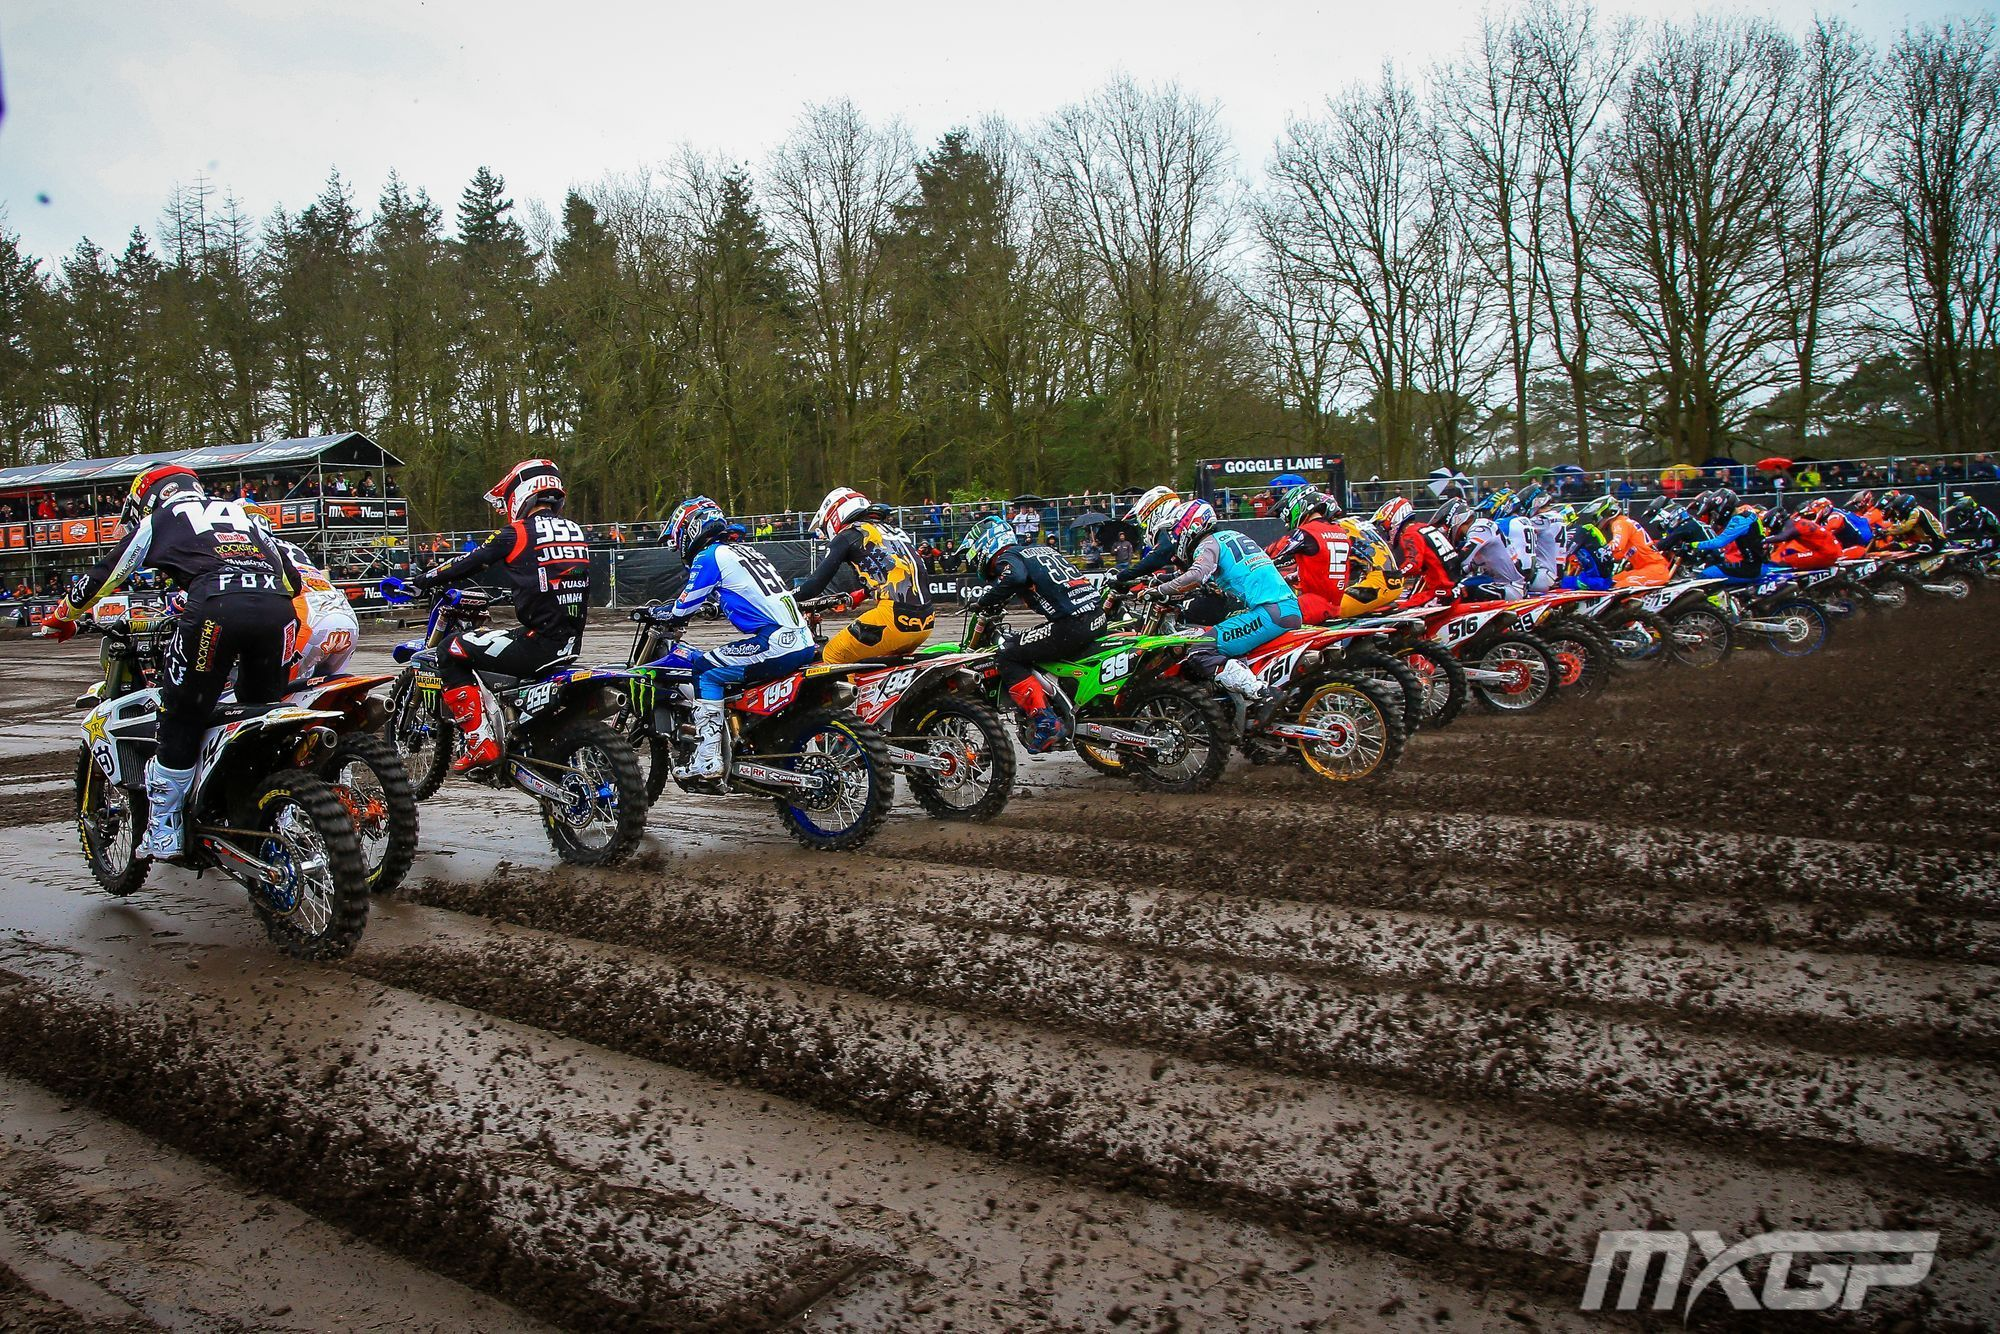 START-MX2-I-MOTOCROSS-GP-2-NL-2020.jpg#asset:27494